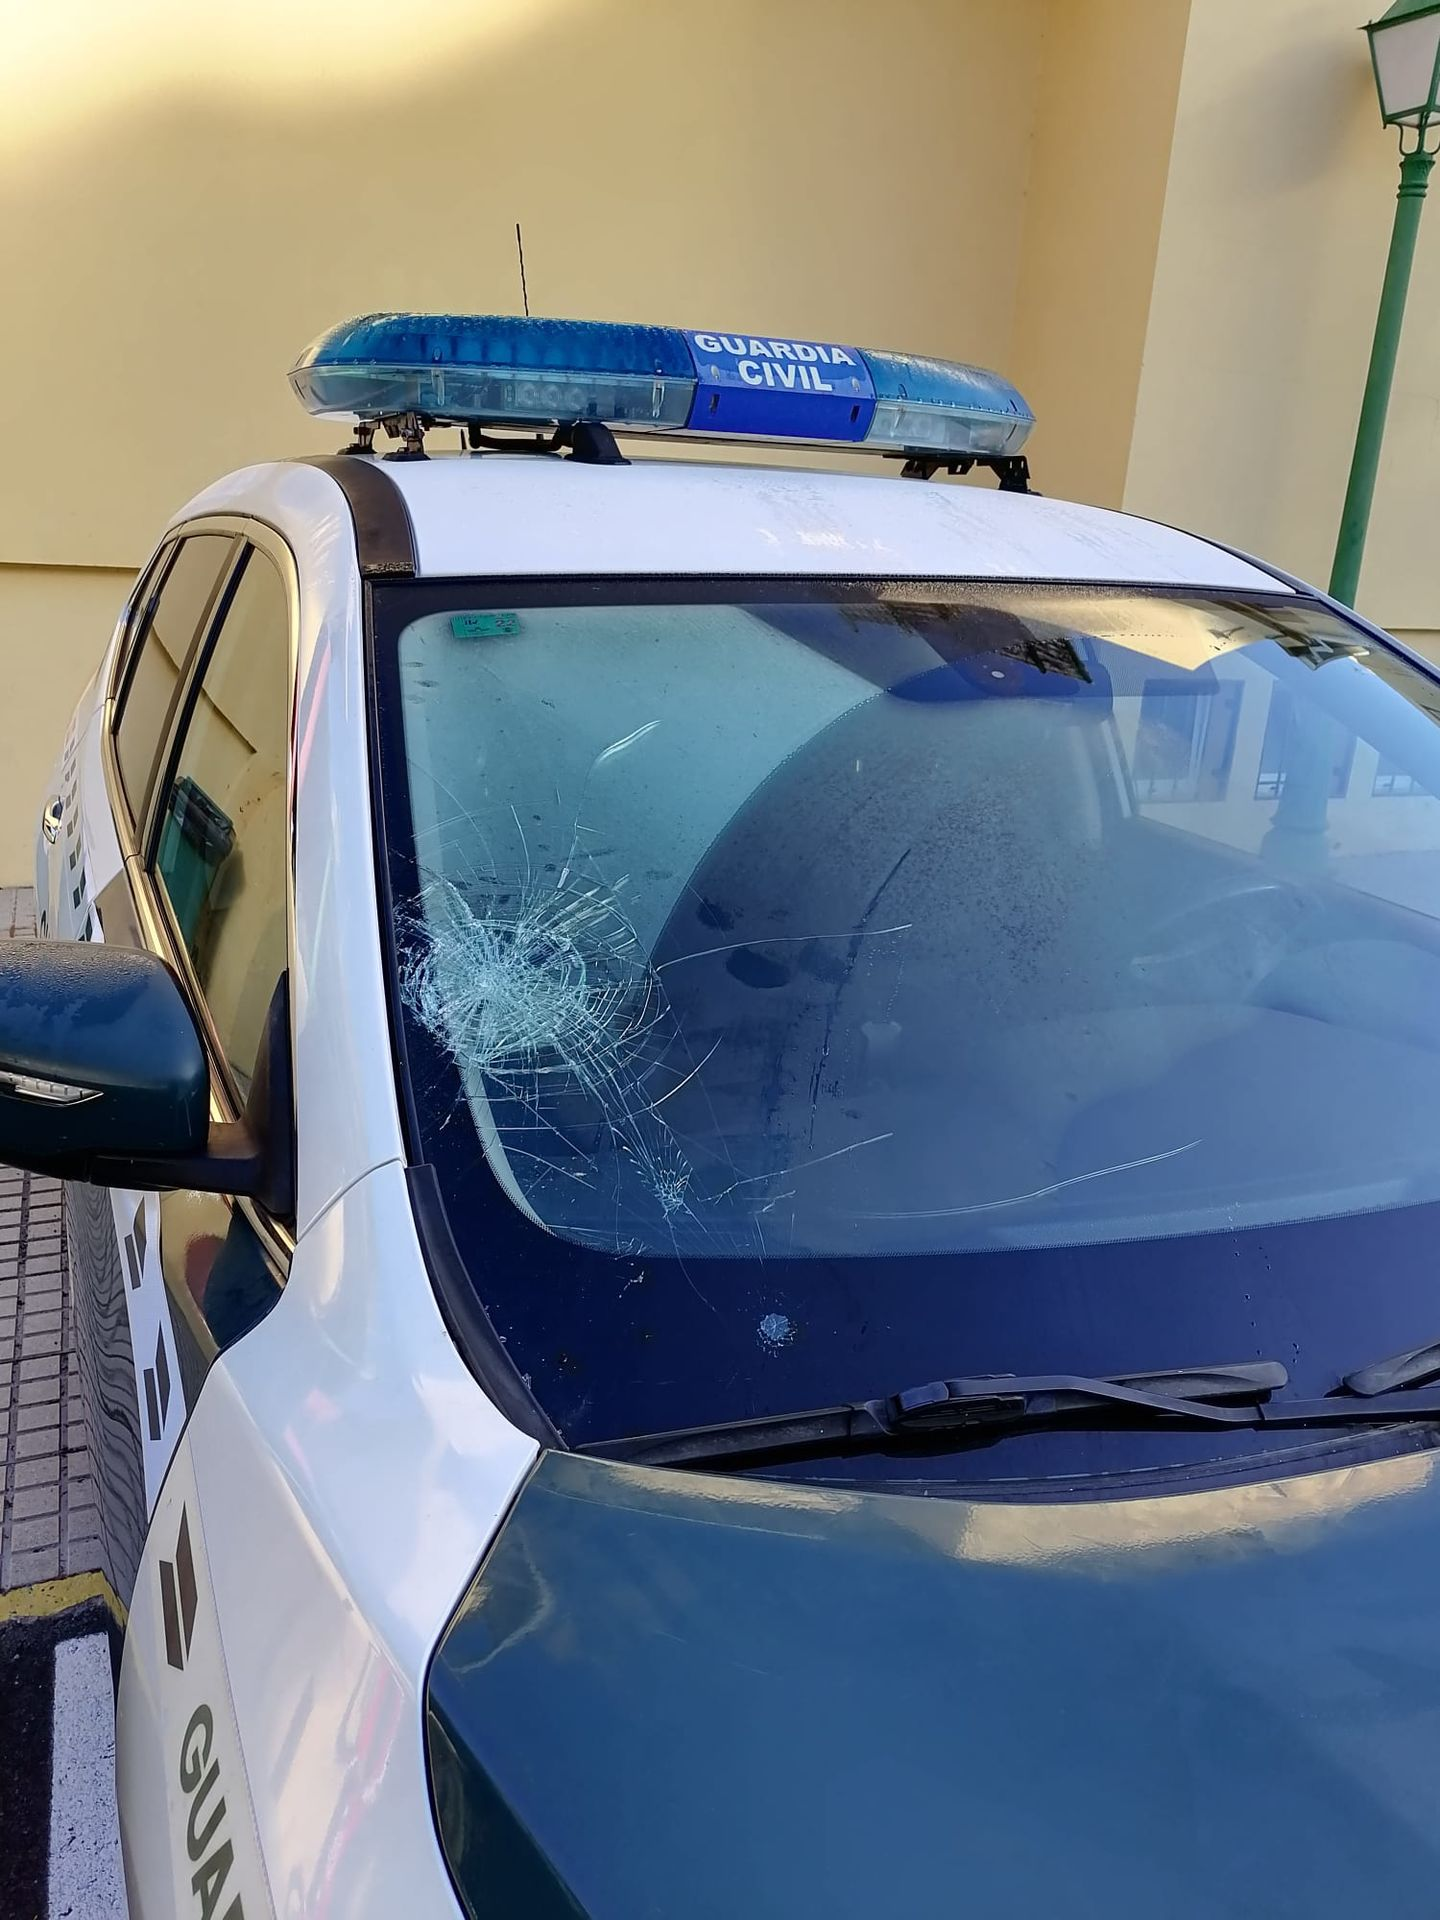 coche-guardia-civil.jpg